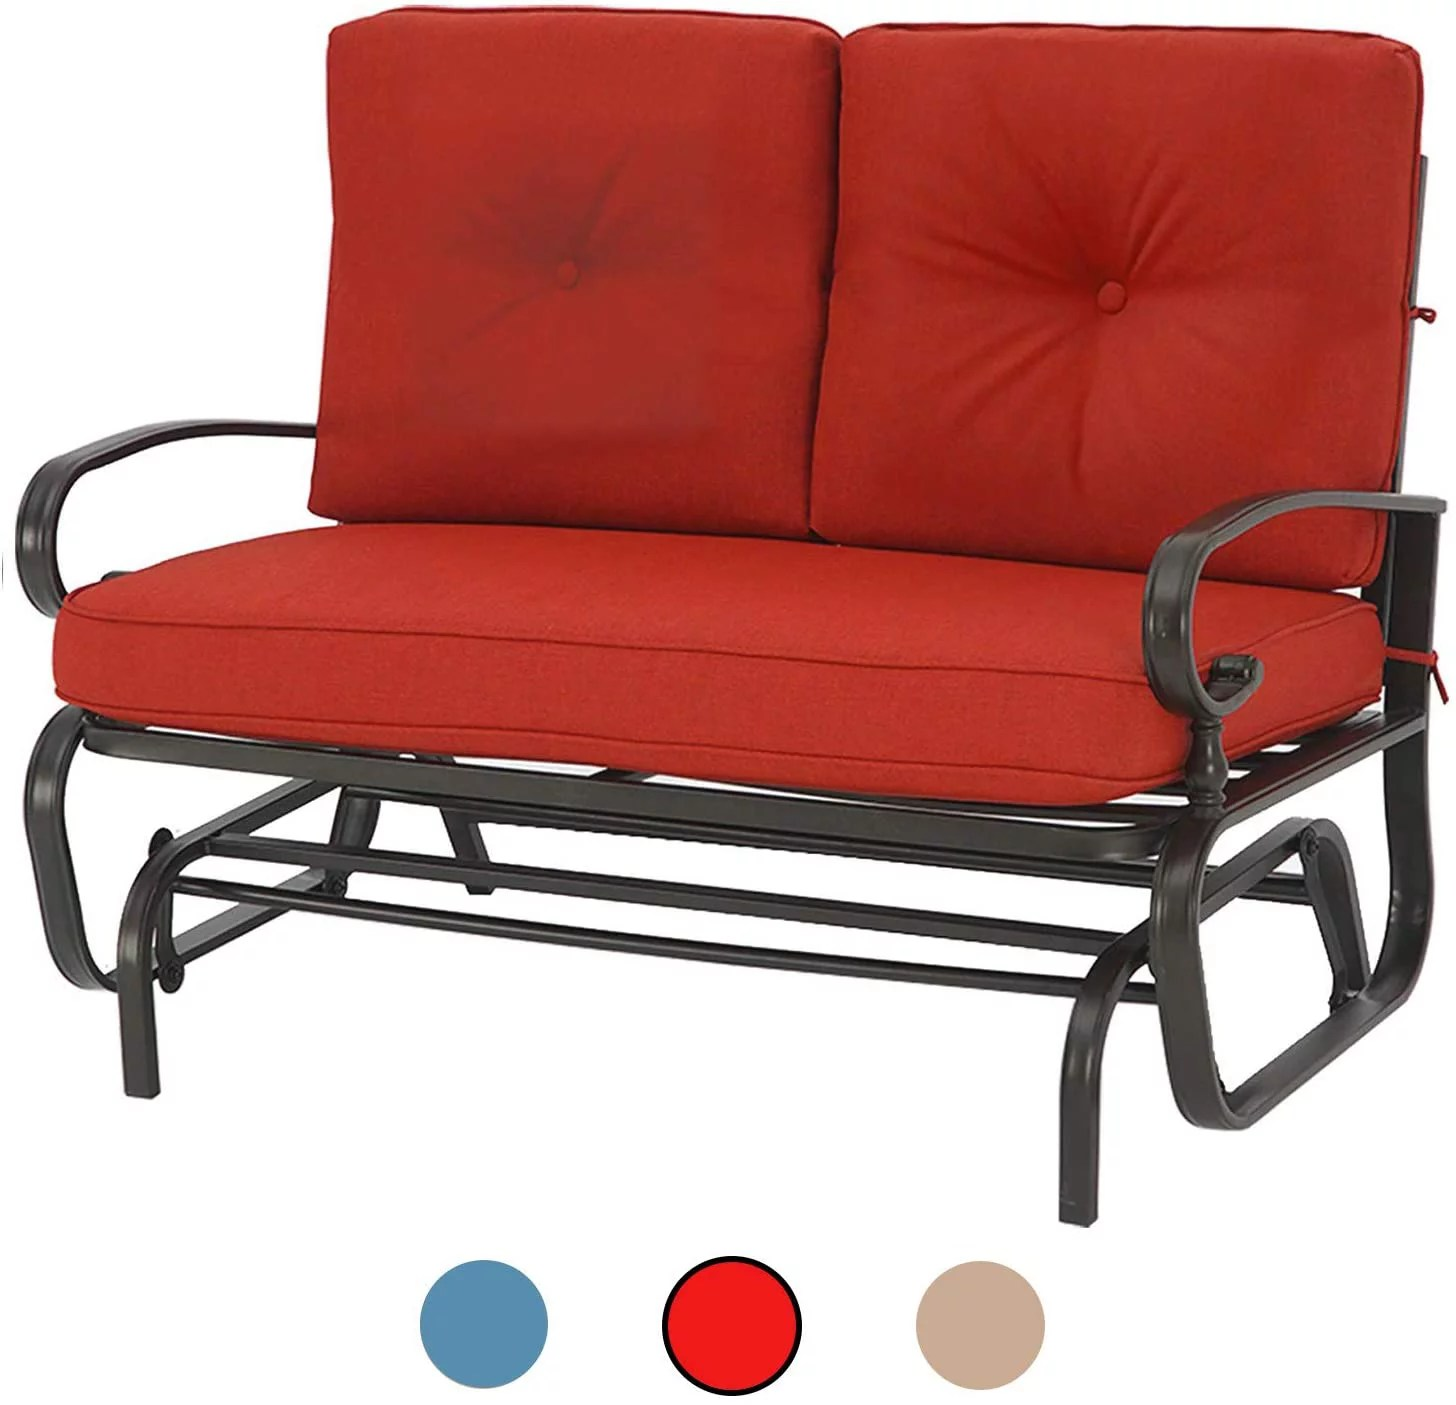 suncrown outdoor swing glider rocking chair patio bench for 2 person garden loveseat seating patio steel frame chair set with cushion red